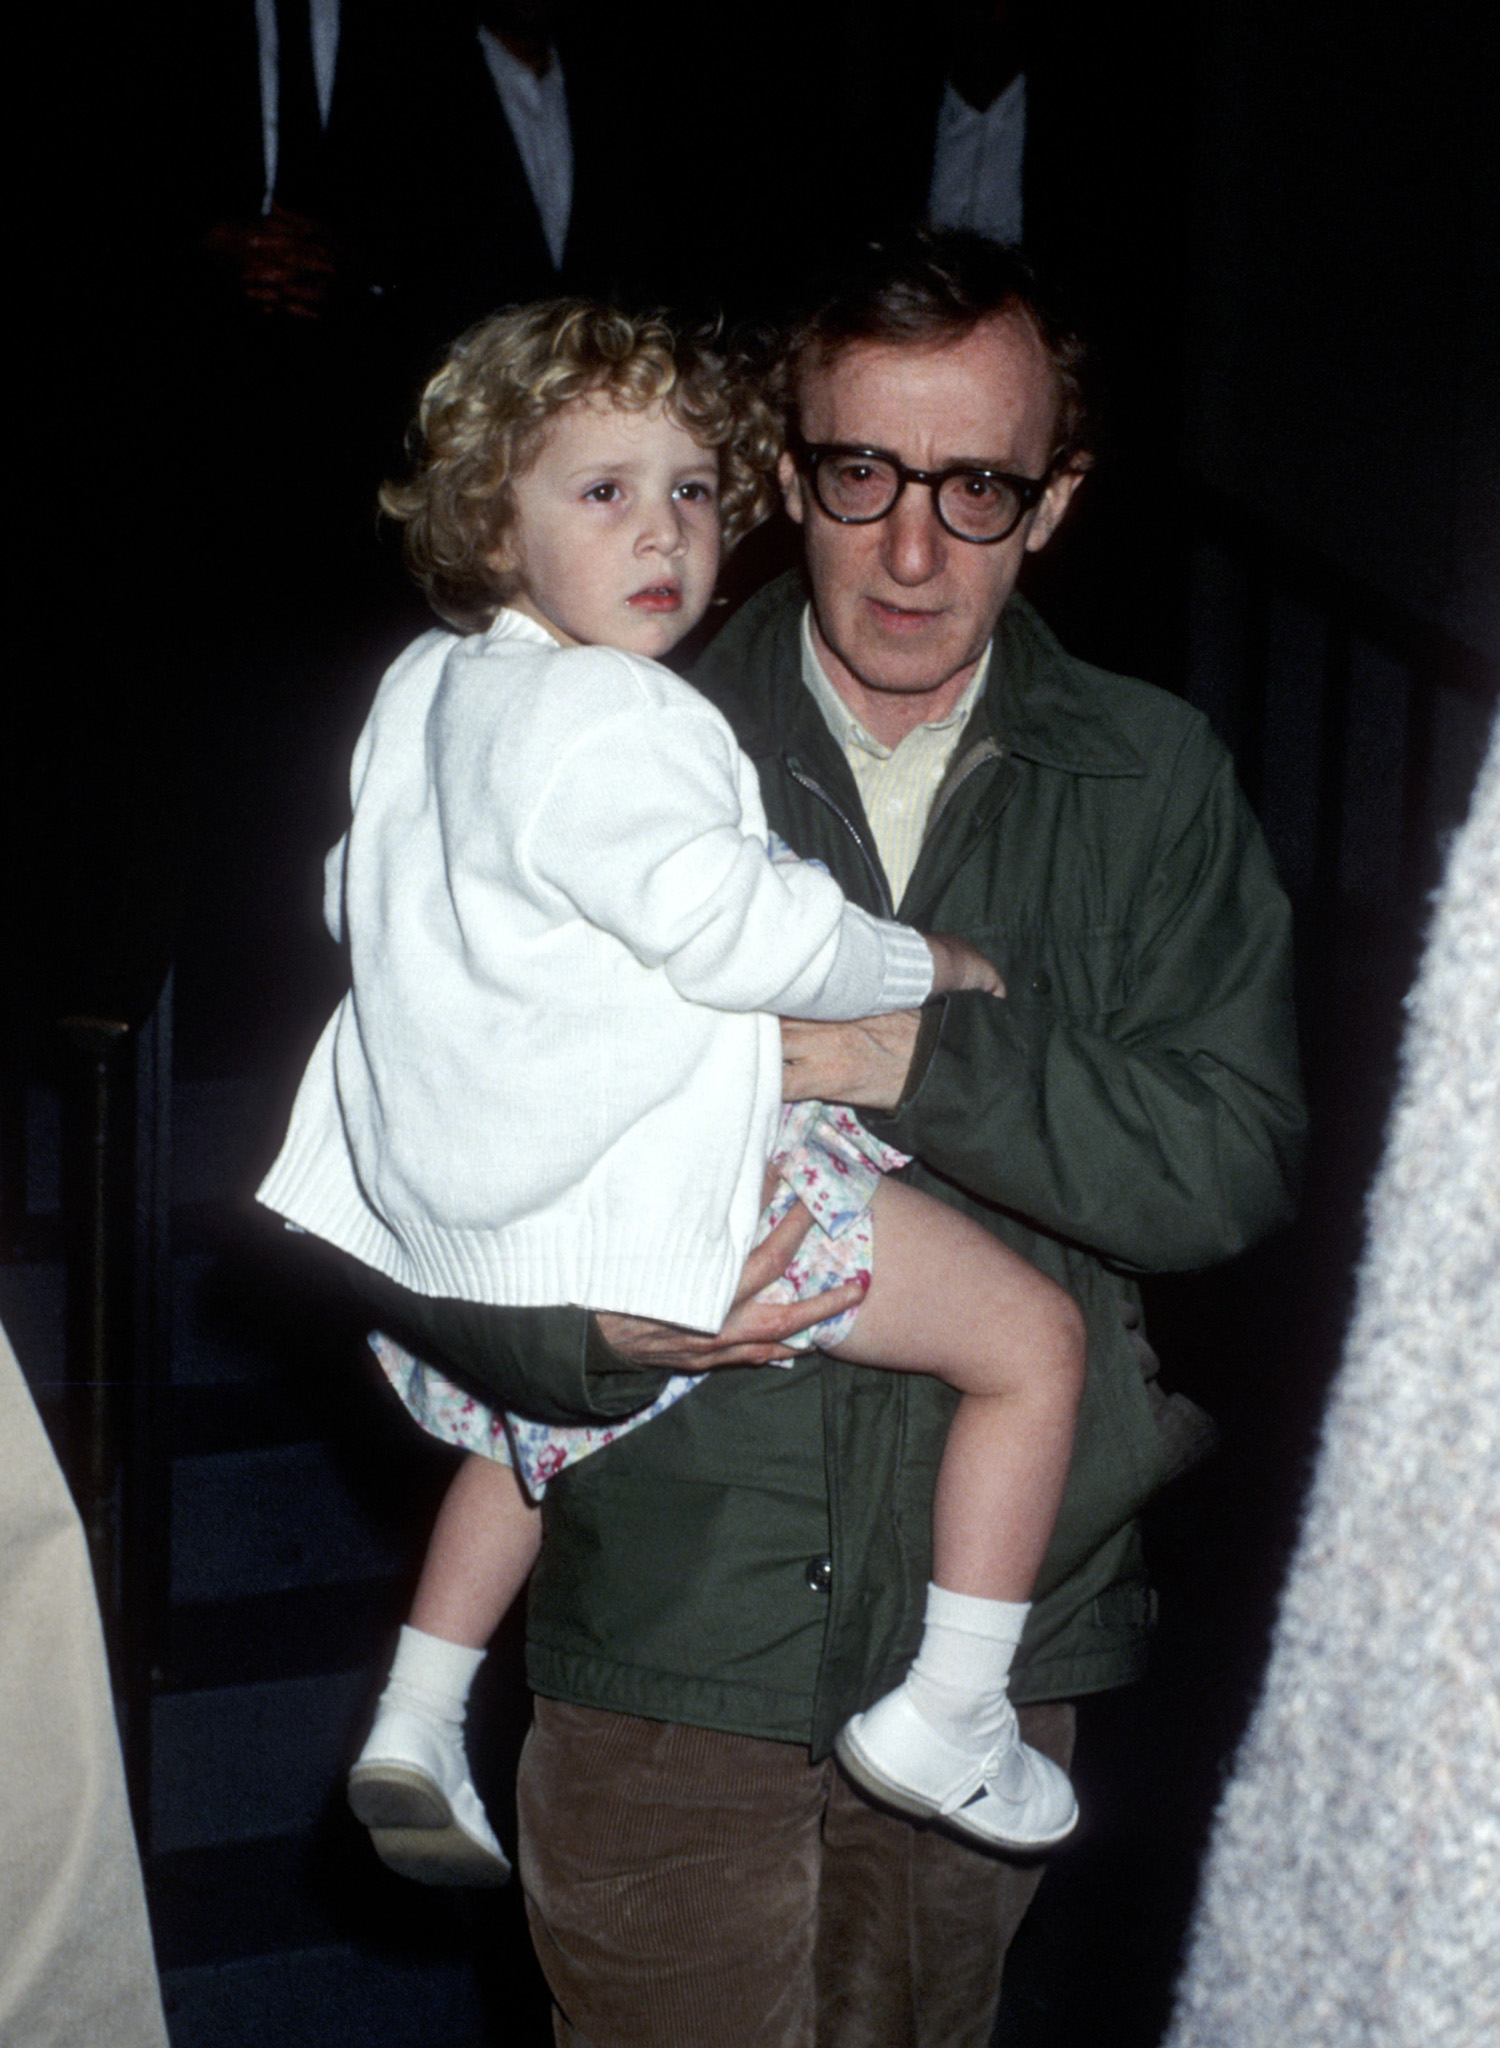 Woody Allen and Dylan Farrow at Mia Farrow's apartment in New York City on May 2, 1989